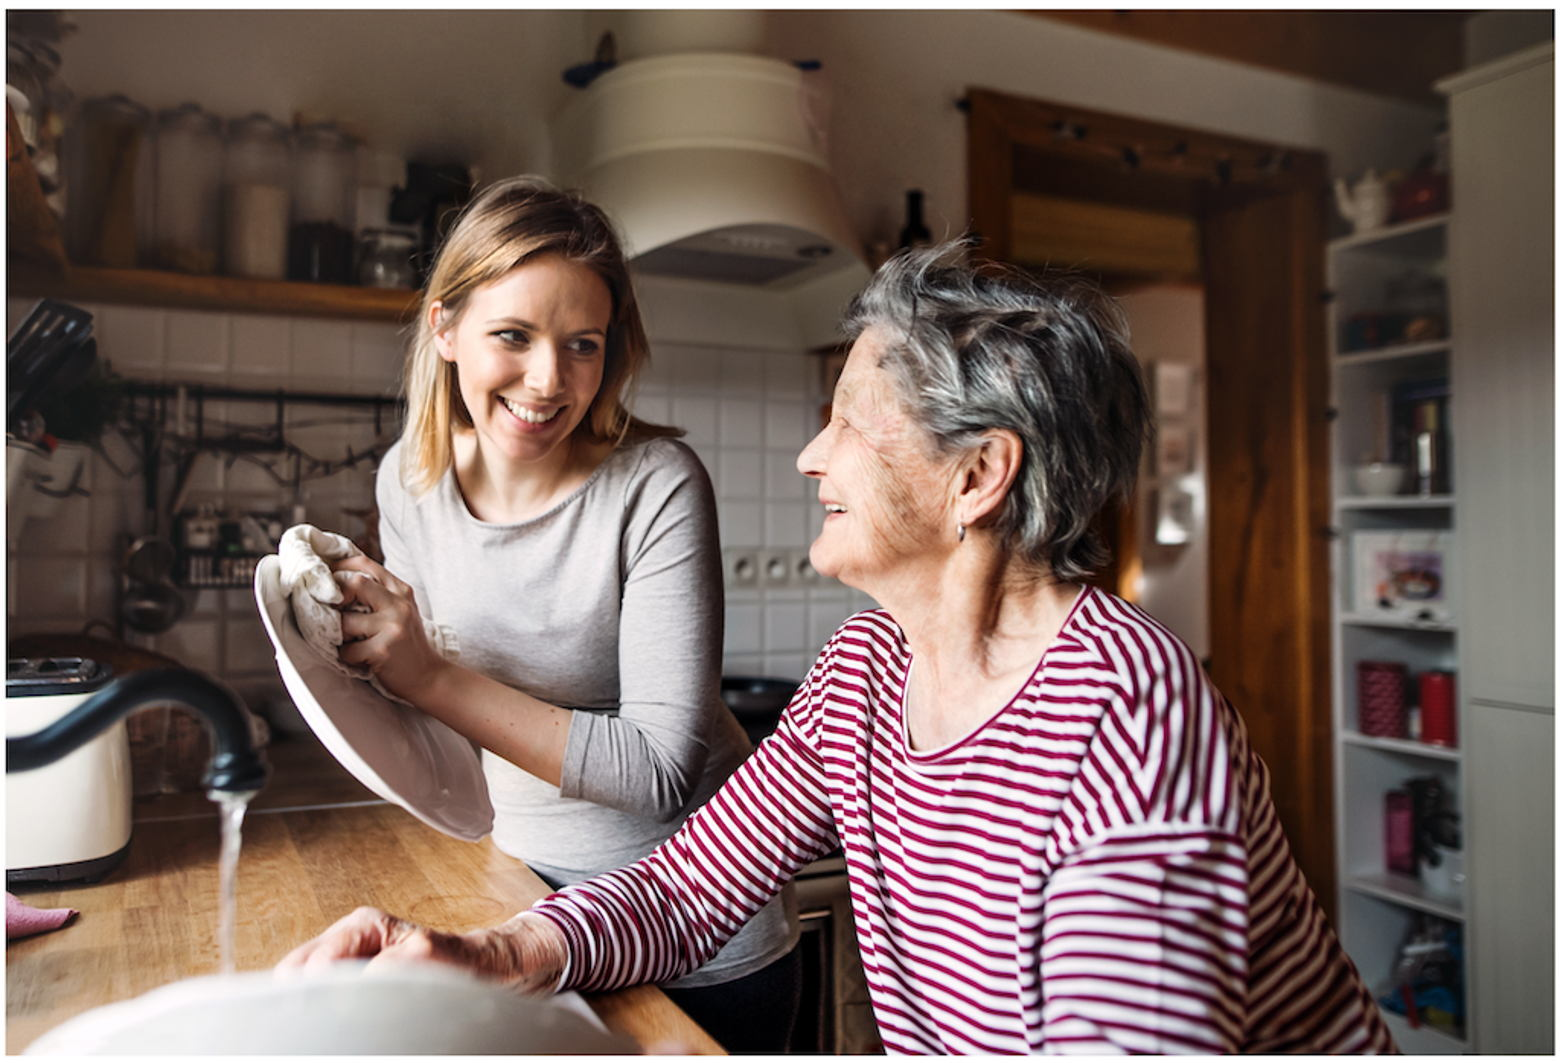 Families can create a more risk-free environment for aging loved ones.